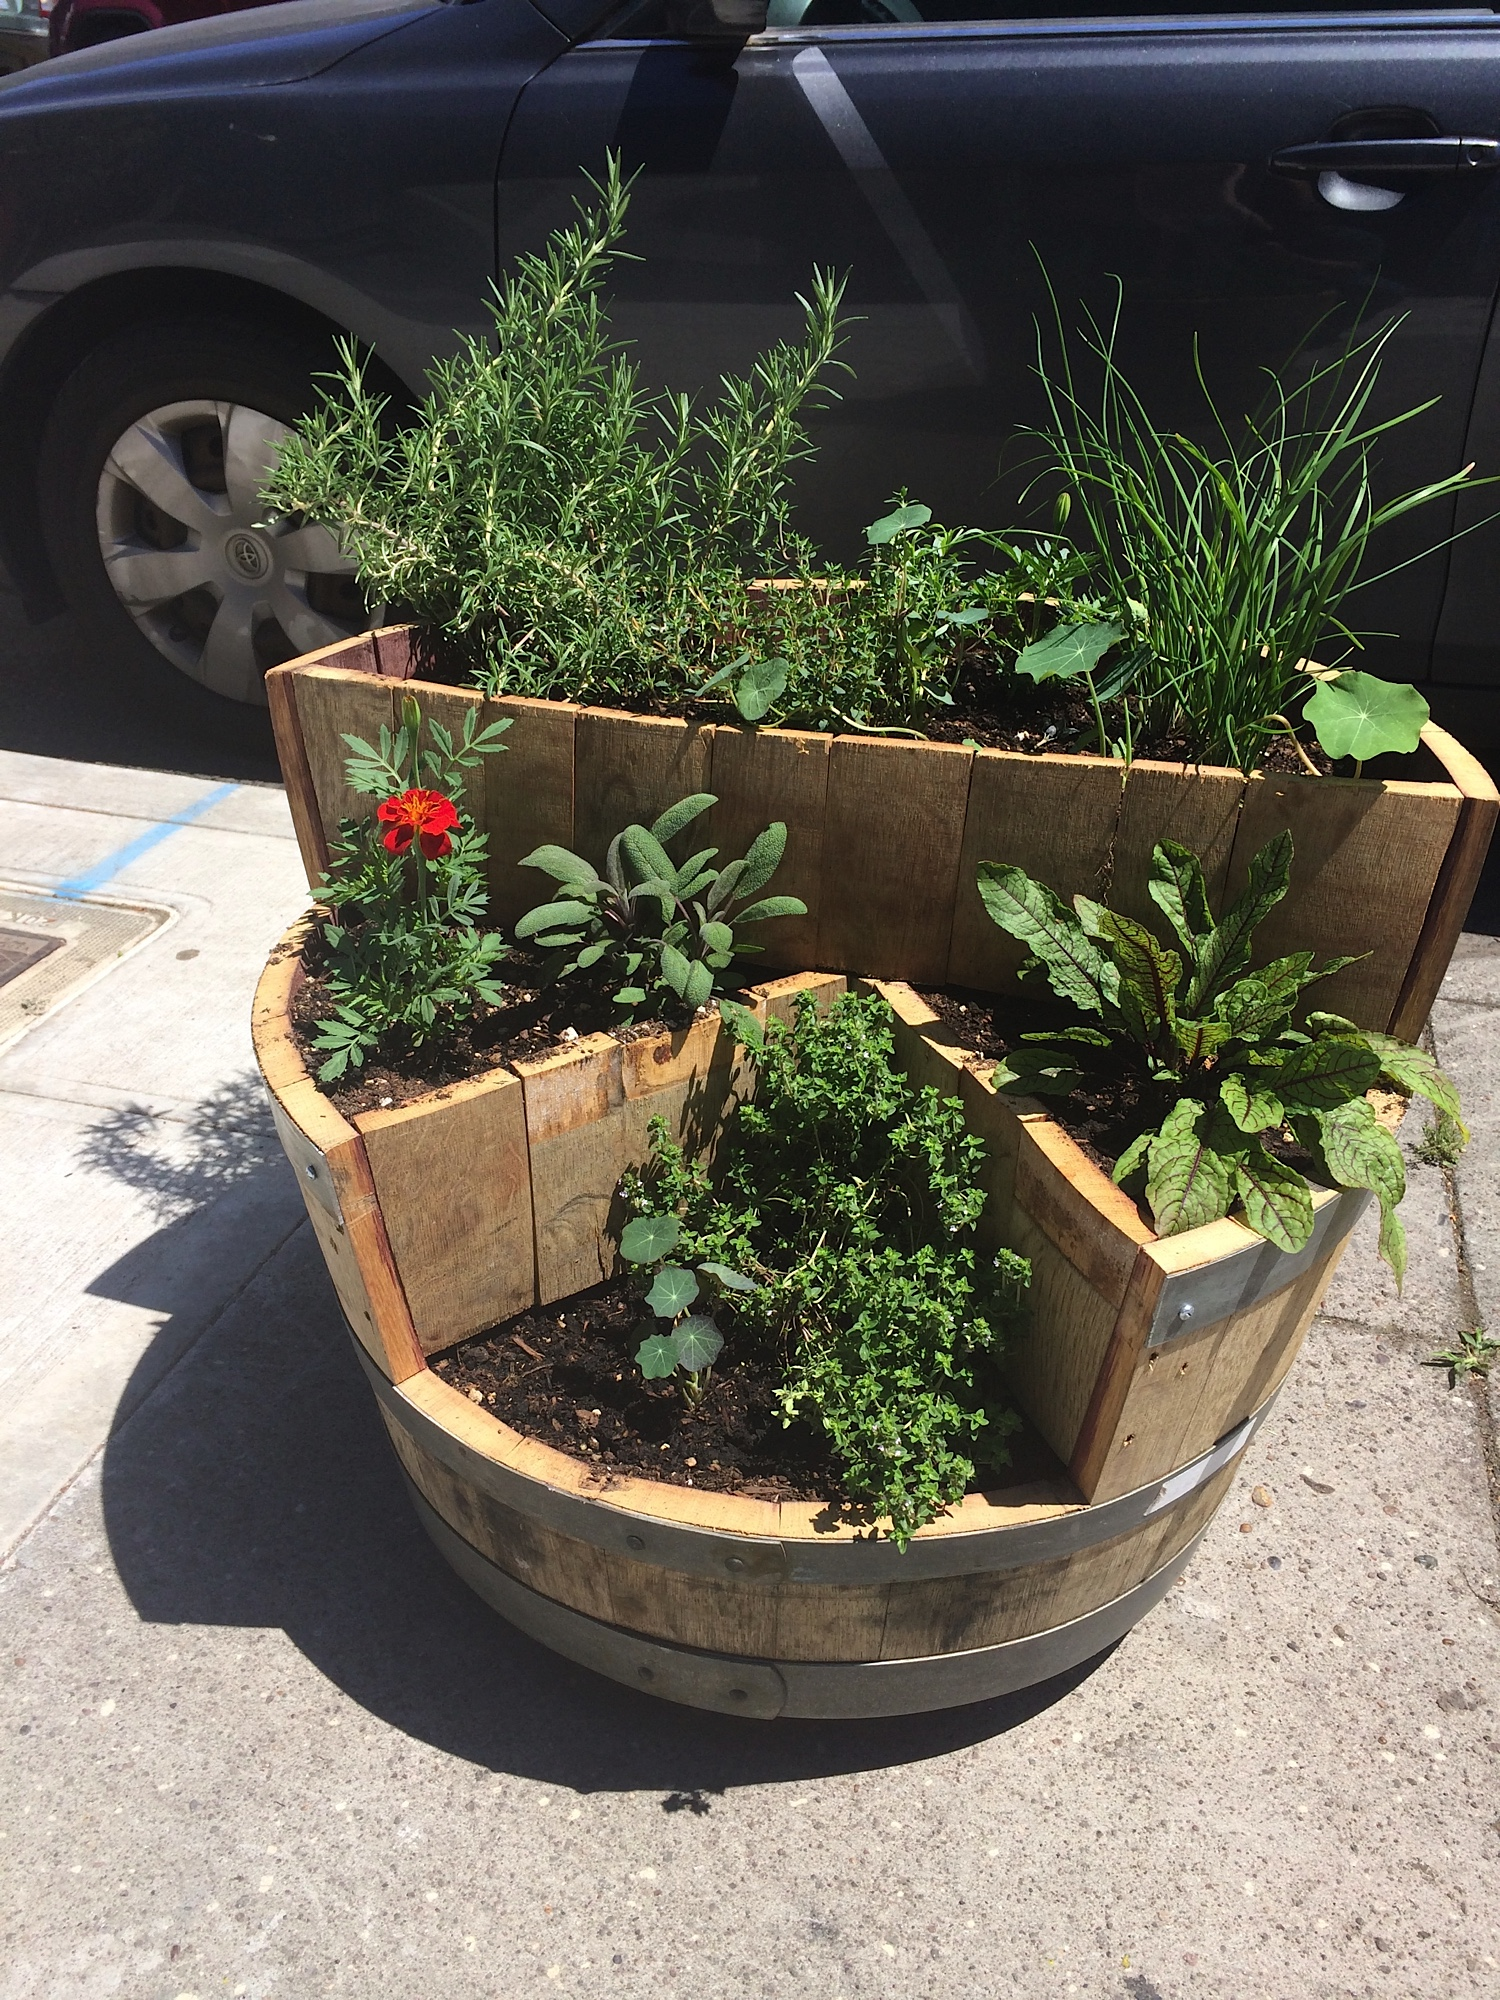 Multi-tiered barrel planter